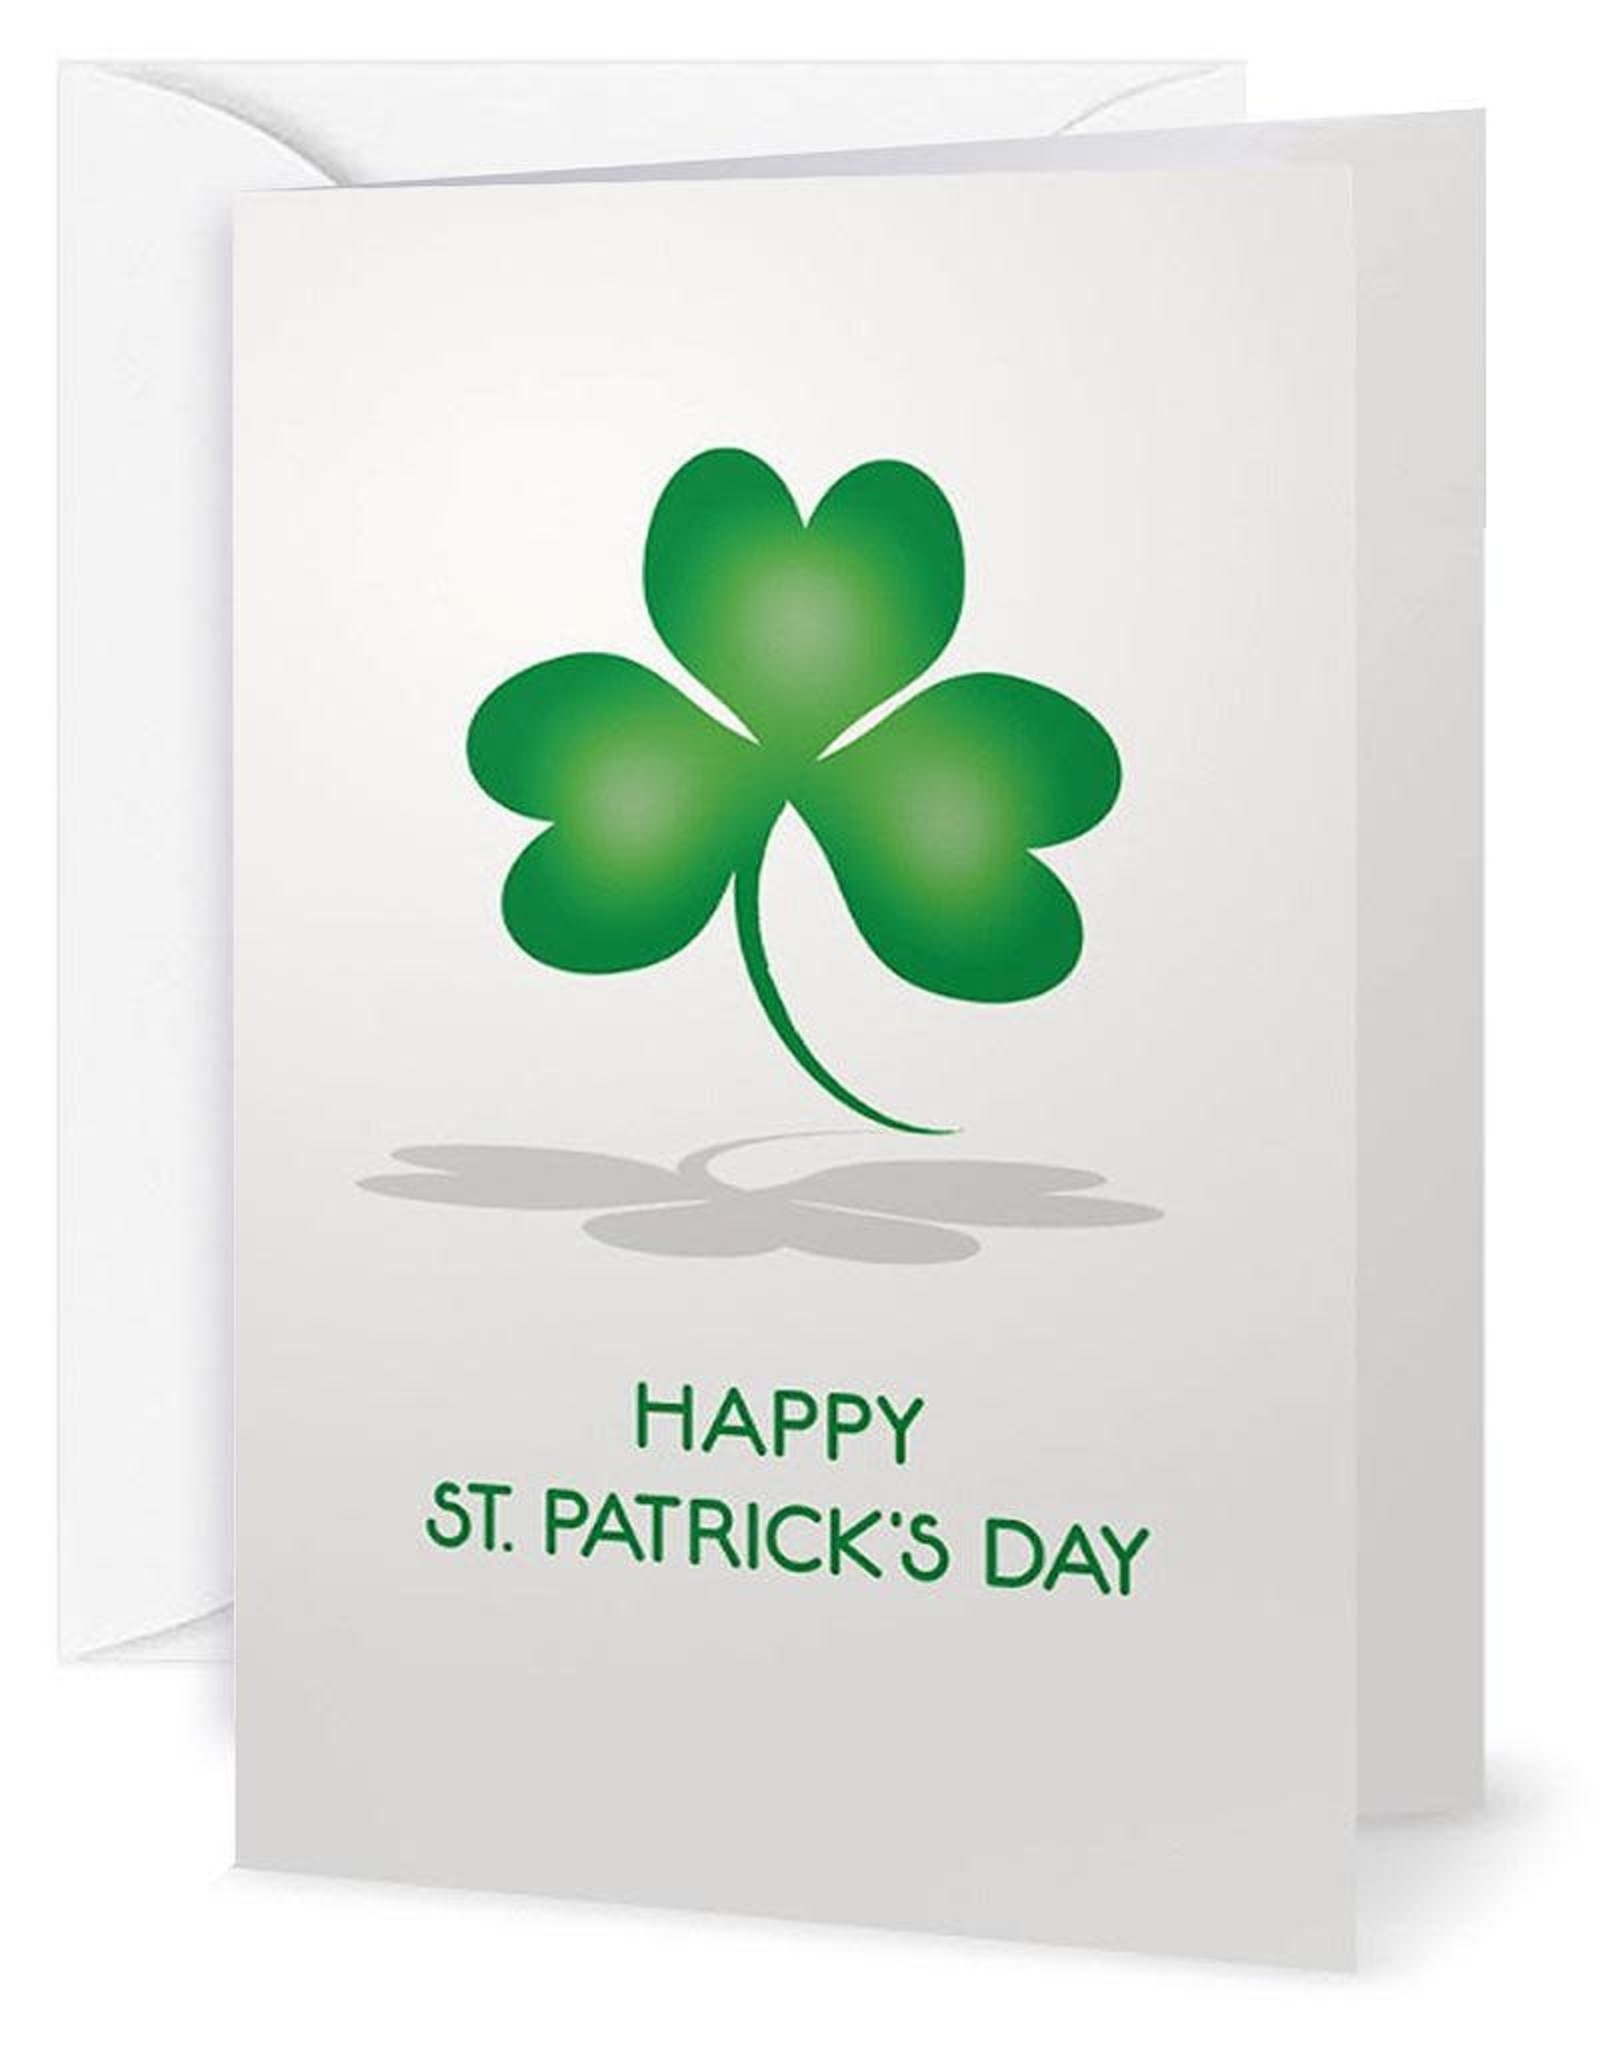 Charles W St Patricks Day Card Happiness Health Good Fortune Irish Blessings